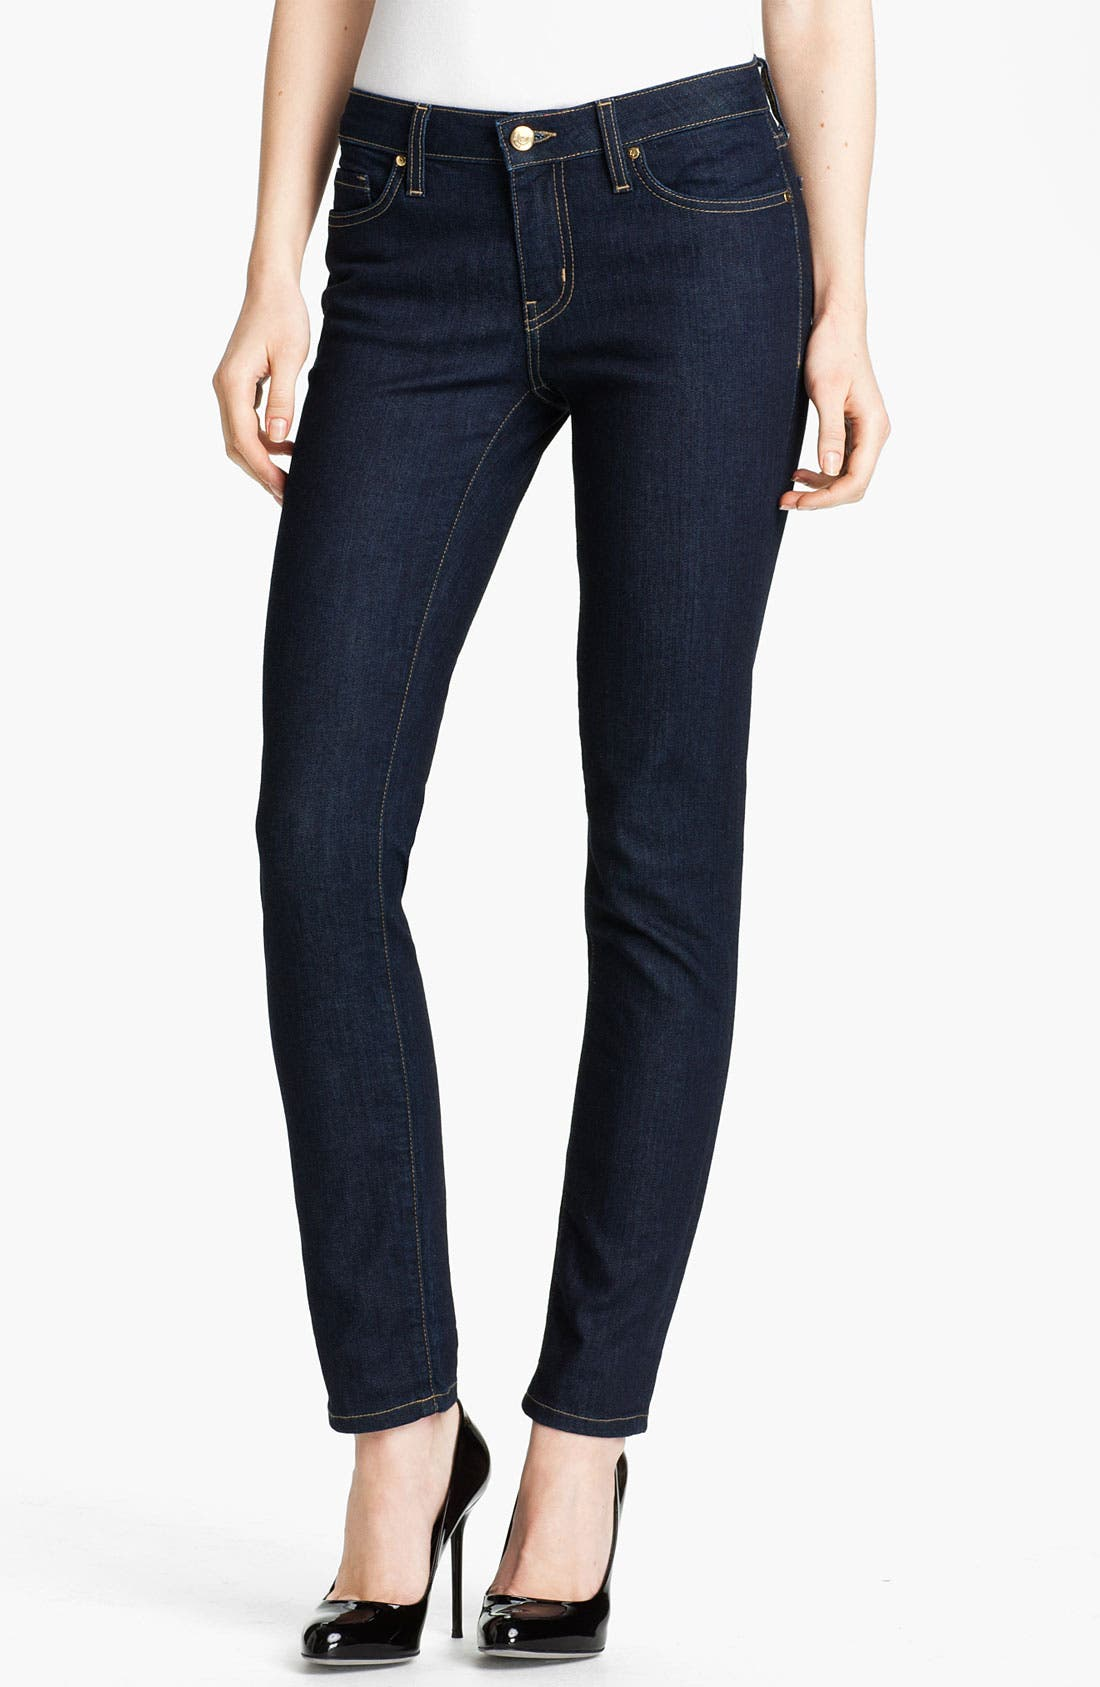 Main Image - kate spade new york 'broome street' skinny jeans (Indigo Wash) (Online Only)